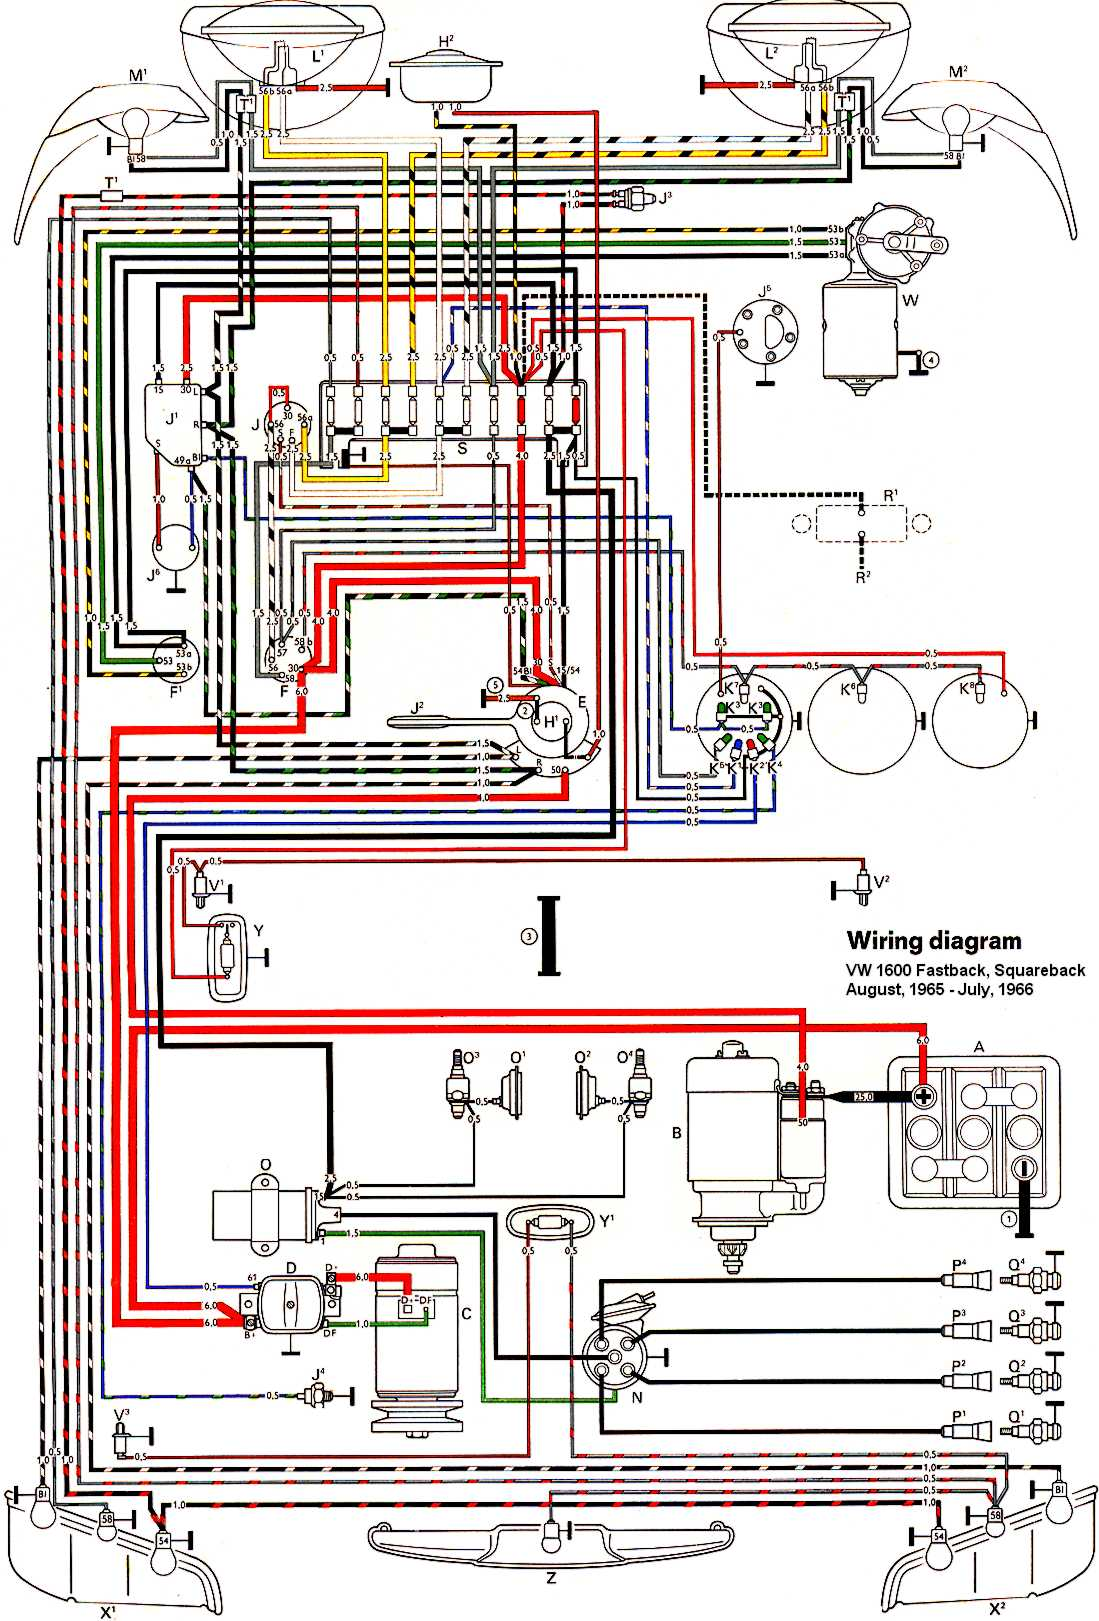 type3_1600_66 thesamba com type 3 wiring diagrams wiring schematics at honlapkeszites.co